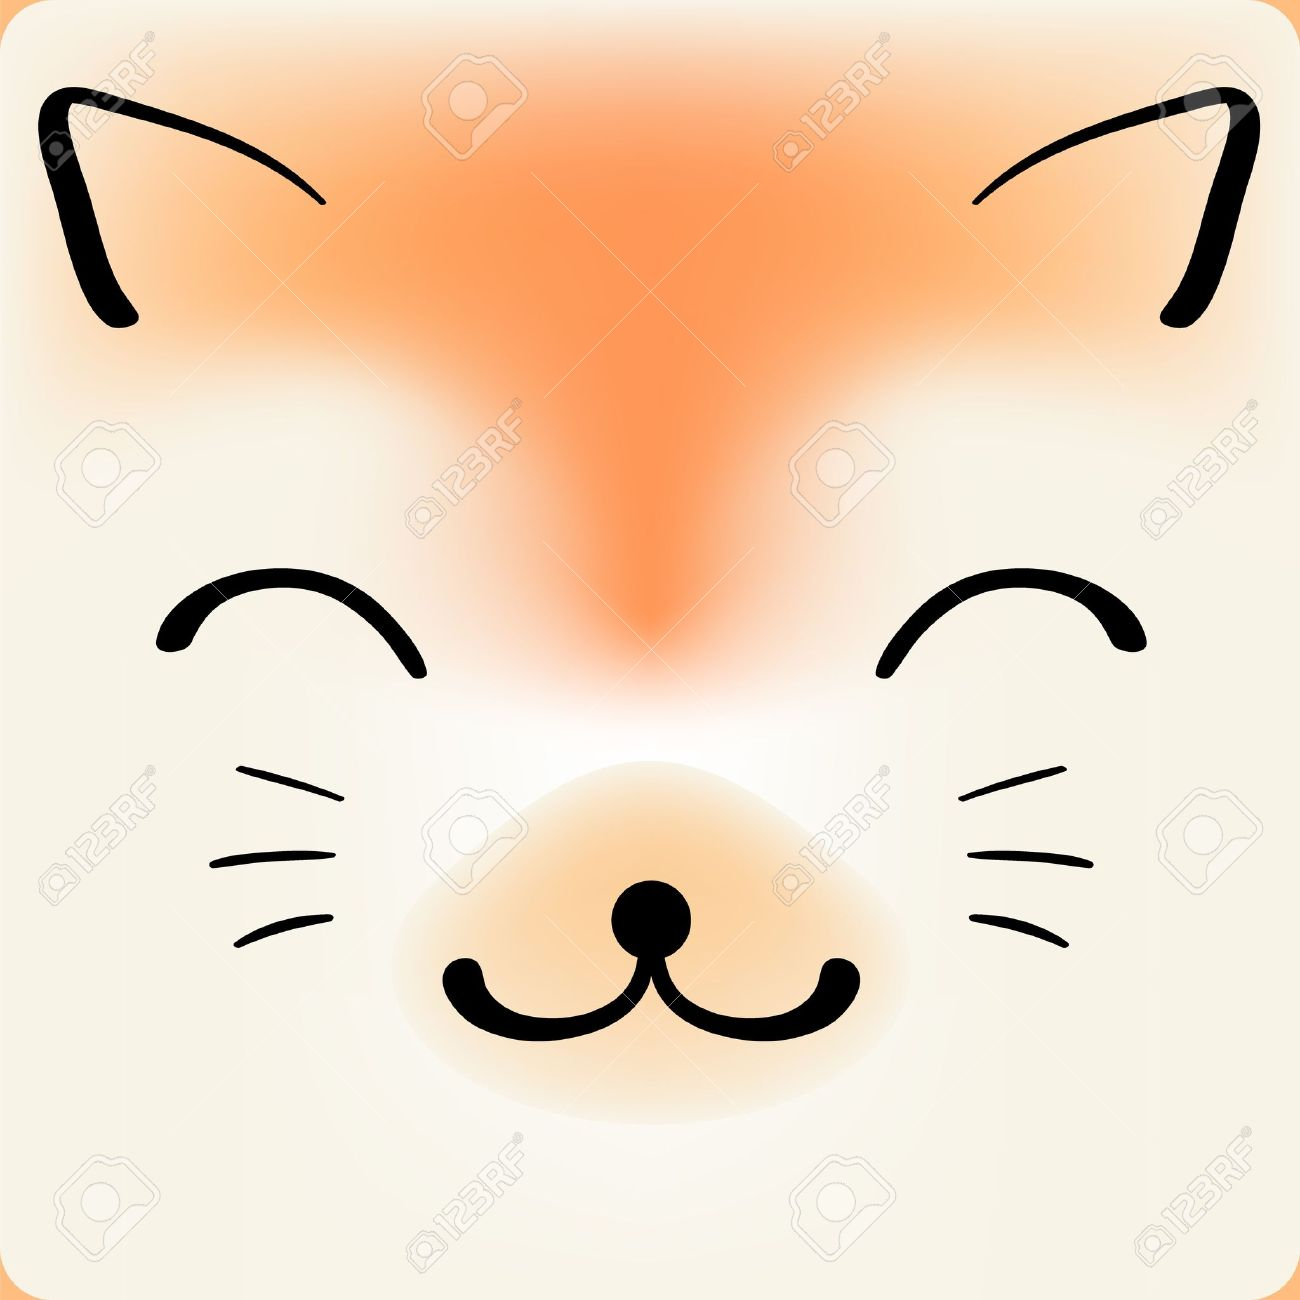 Cute Cartoon Cat Face Vector Background For A Card Royalty Free Cliparts Vectors And Stock Illustration Image 18855748